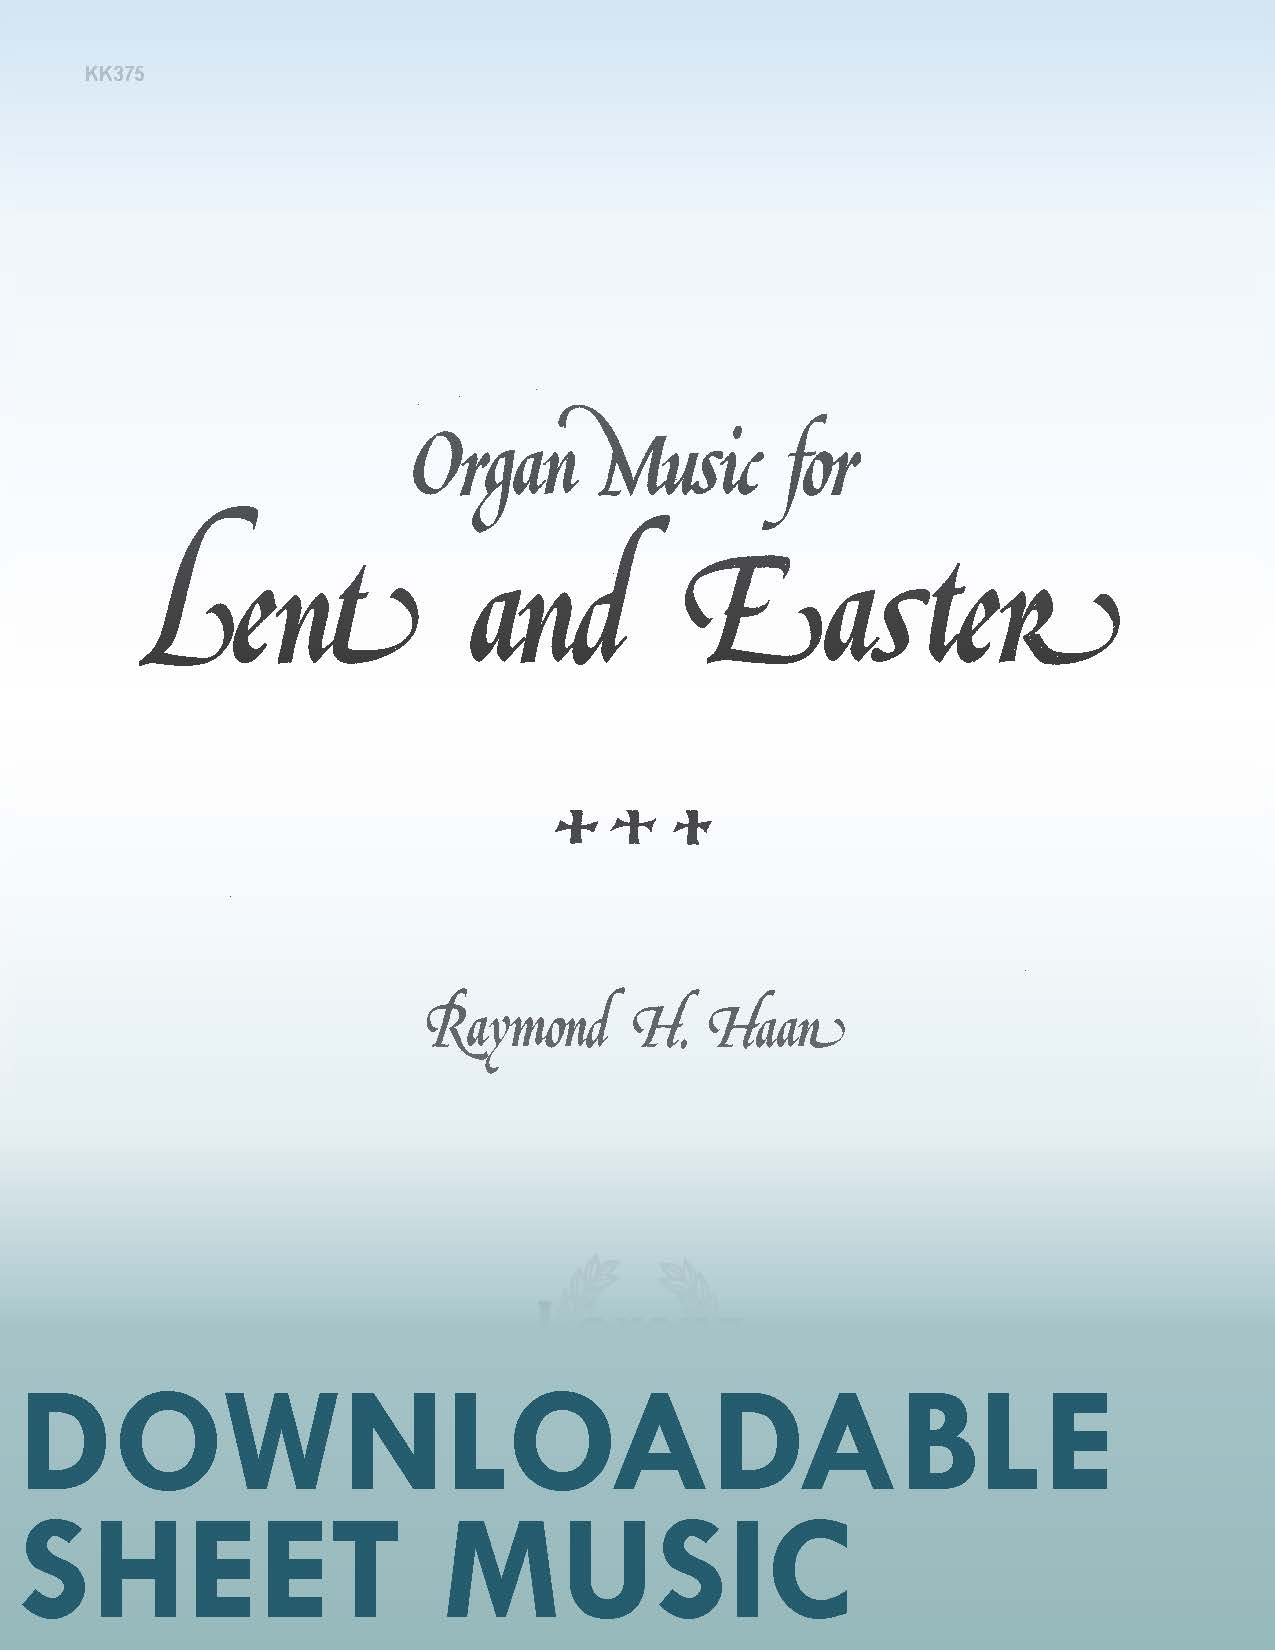 Organ Music for Lent and Easter - Digital Download